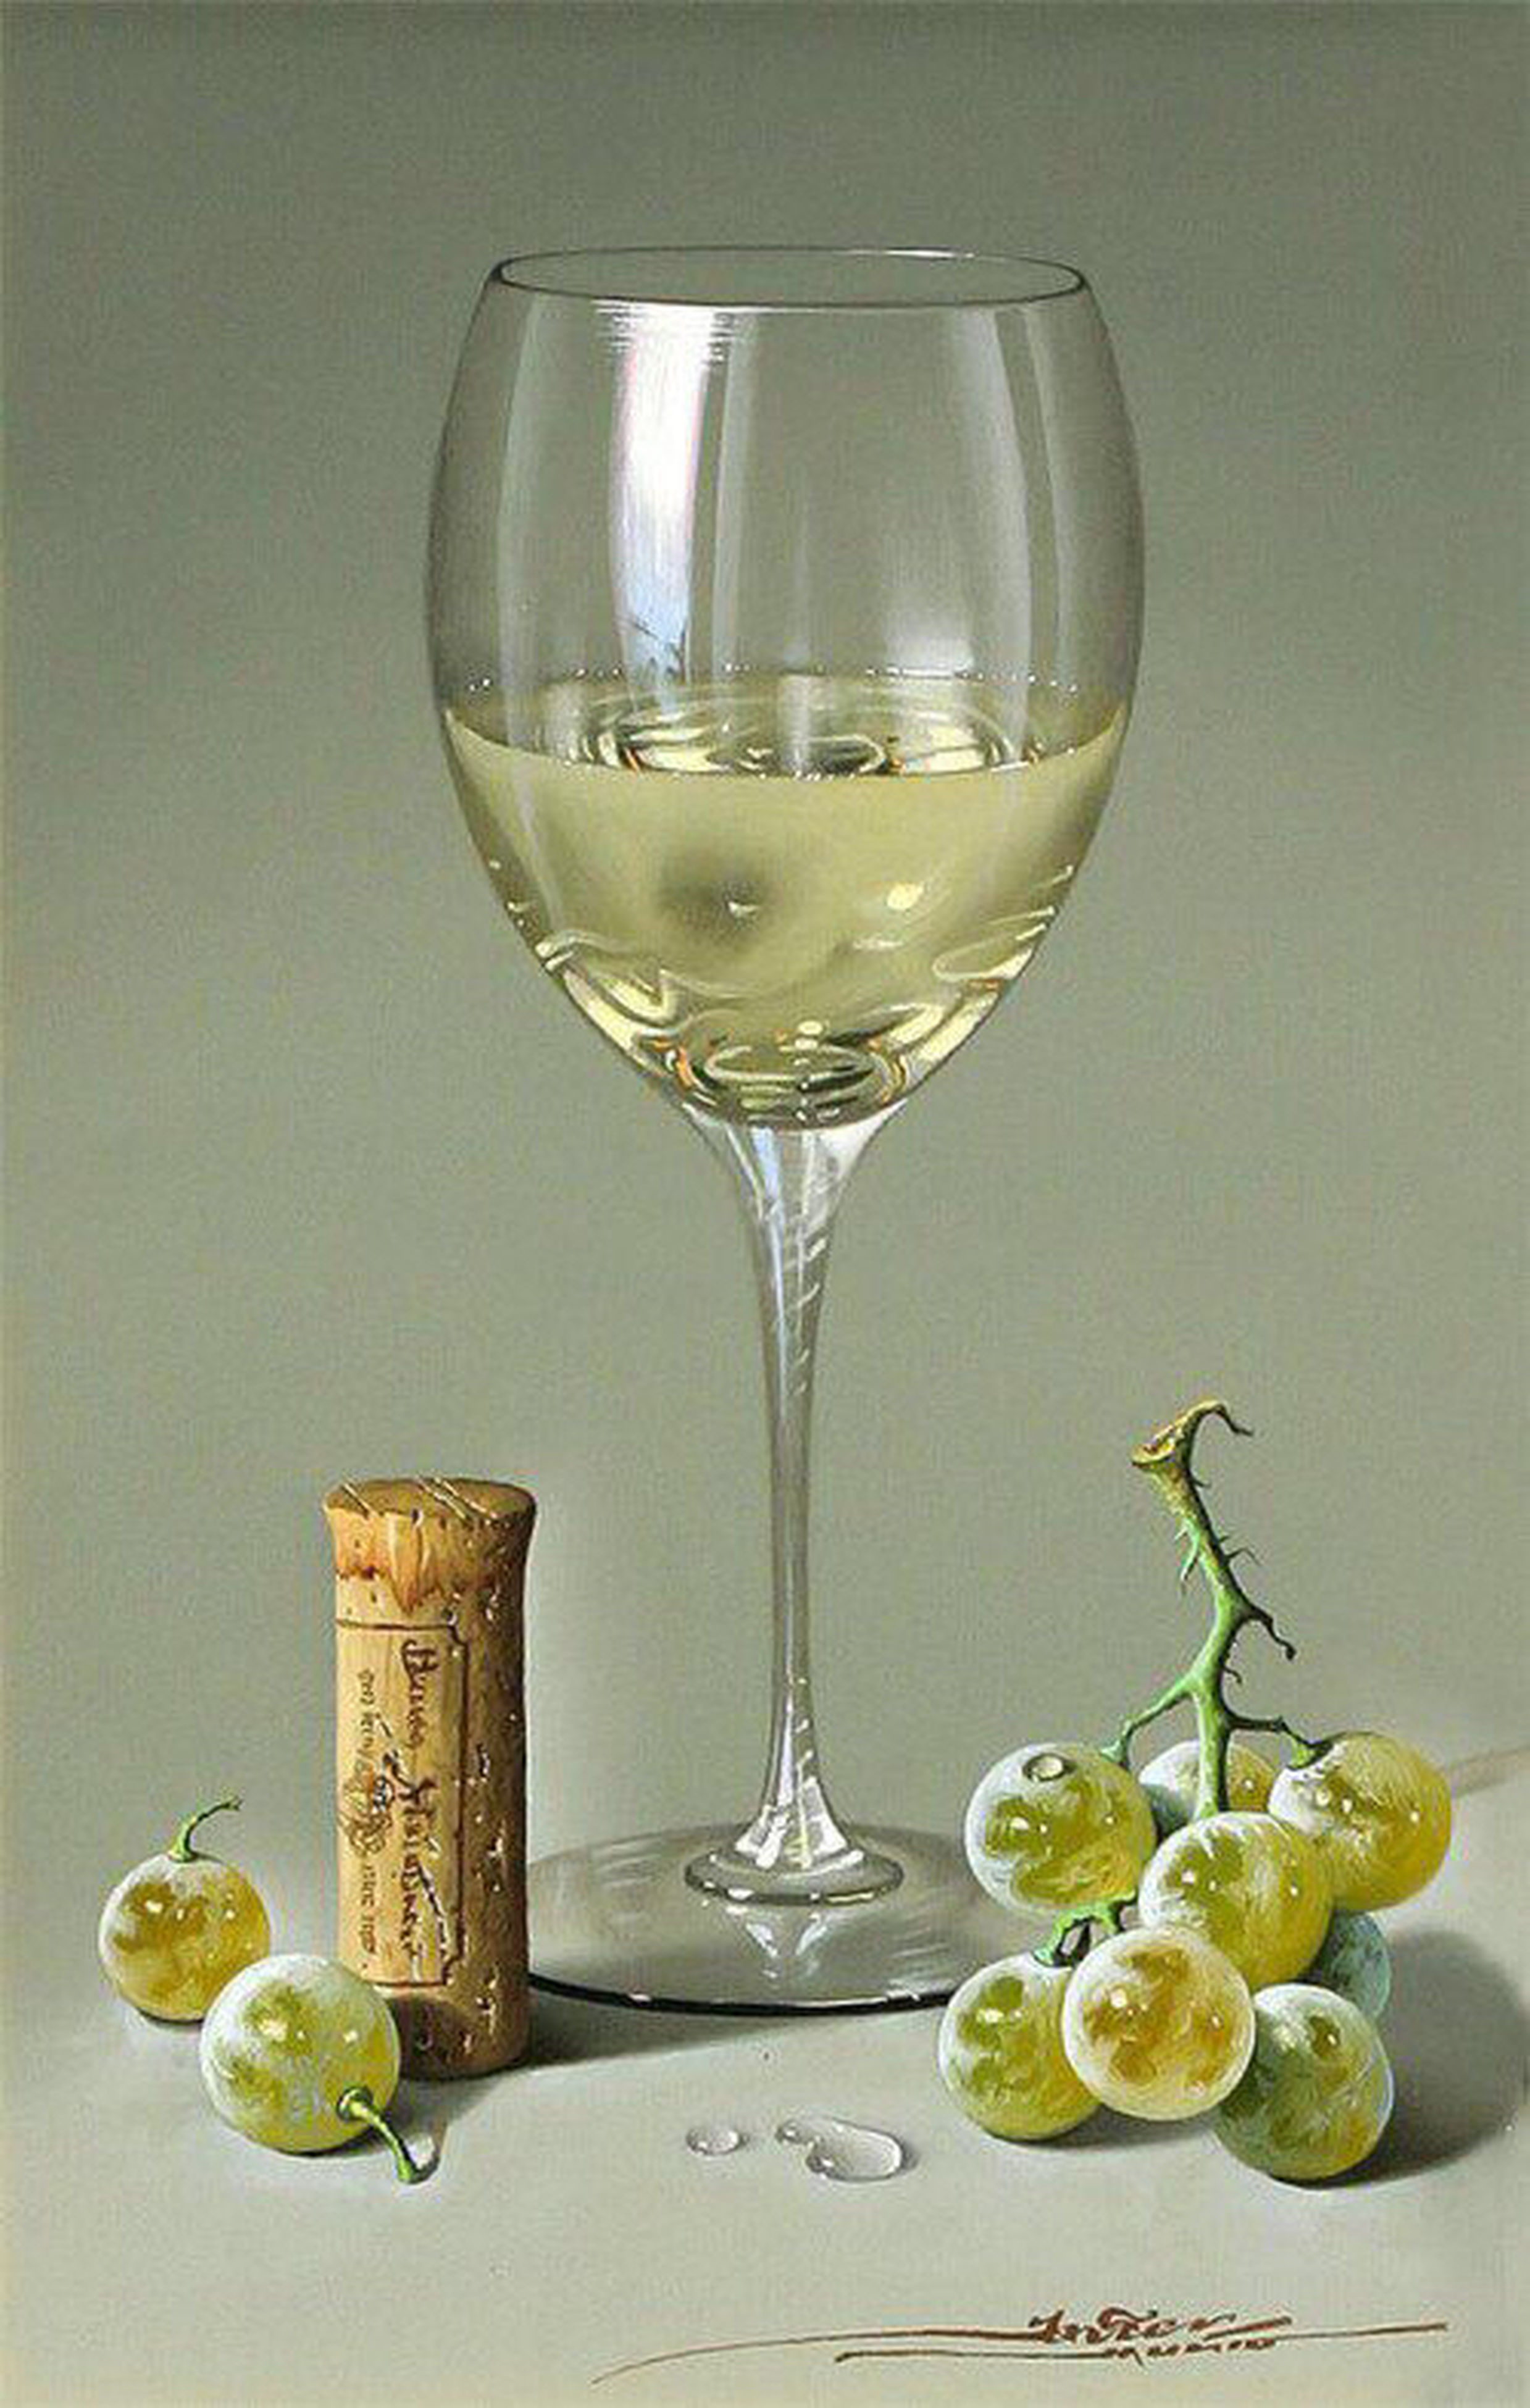 indoors, glass - material, wineglass, transparent, still life, table, drinking glass, food and drink, wine, studio shot, close-up, drink, alcohol, glass, freshness, refreshment, wine glass, fragility, bottle, no people